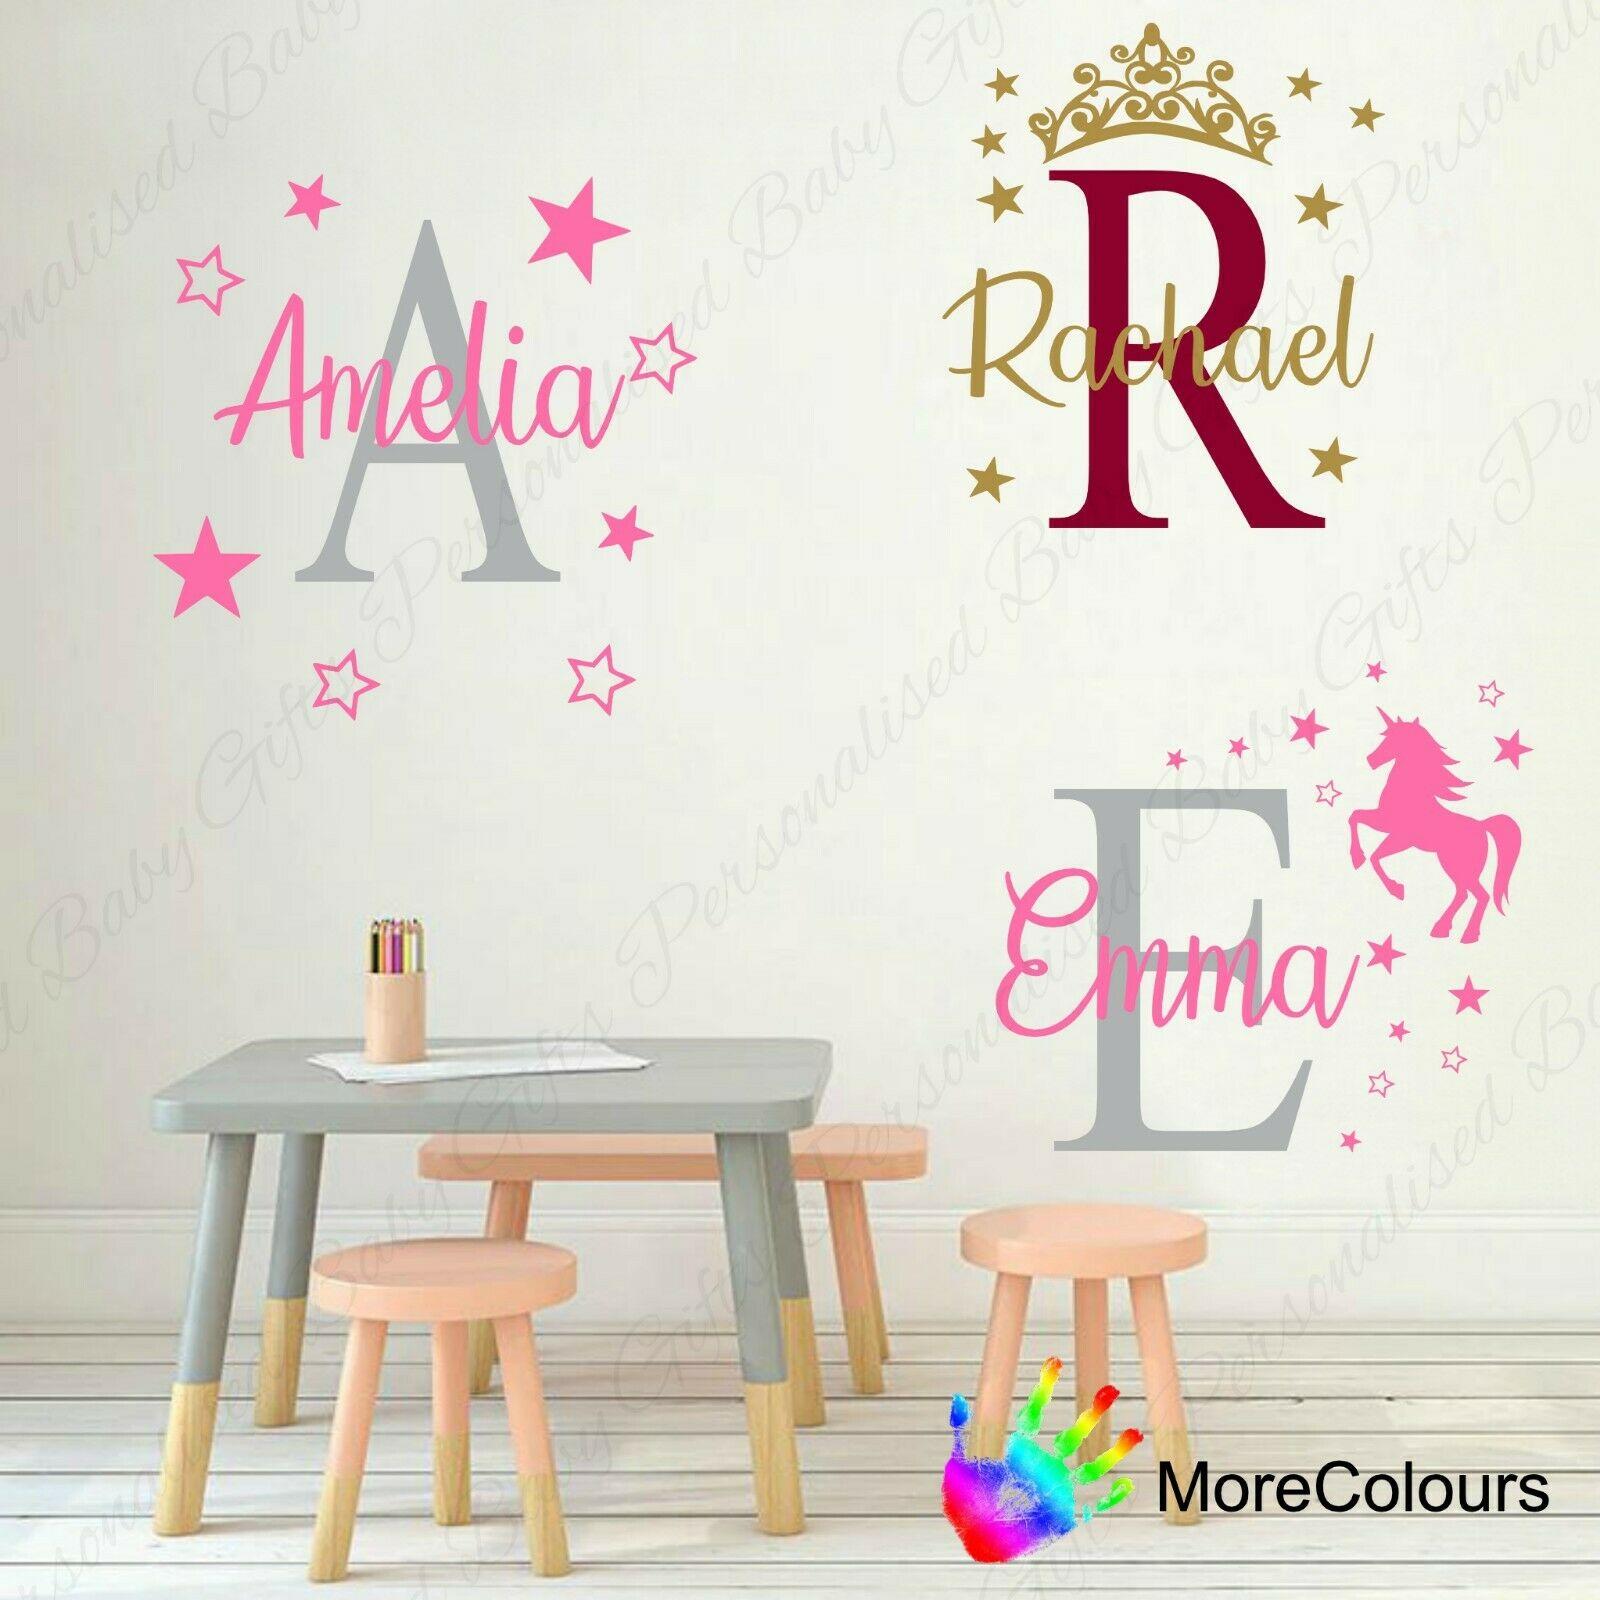 Home Decoration - Personalised Name Wall Art Sticker Letter Baby Girls Bedroom Nursery Decal Cot